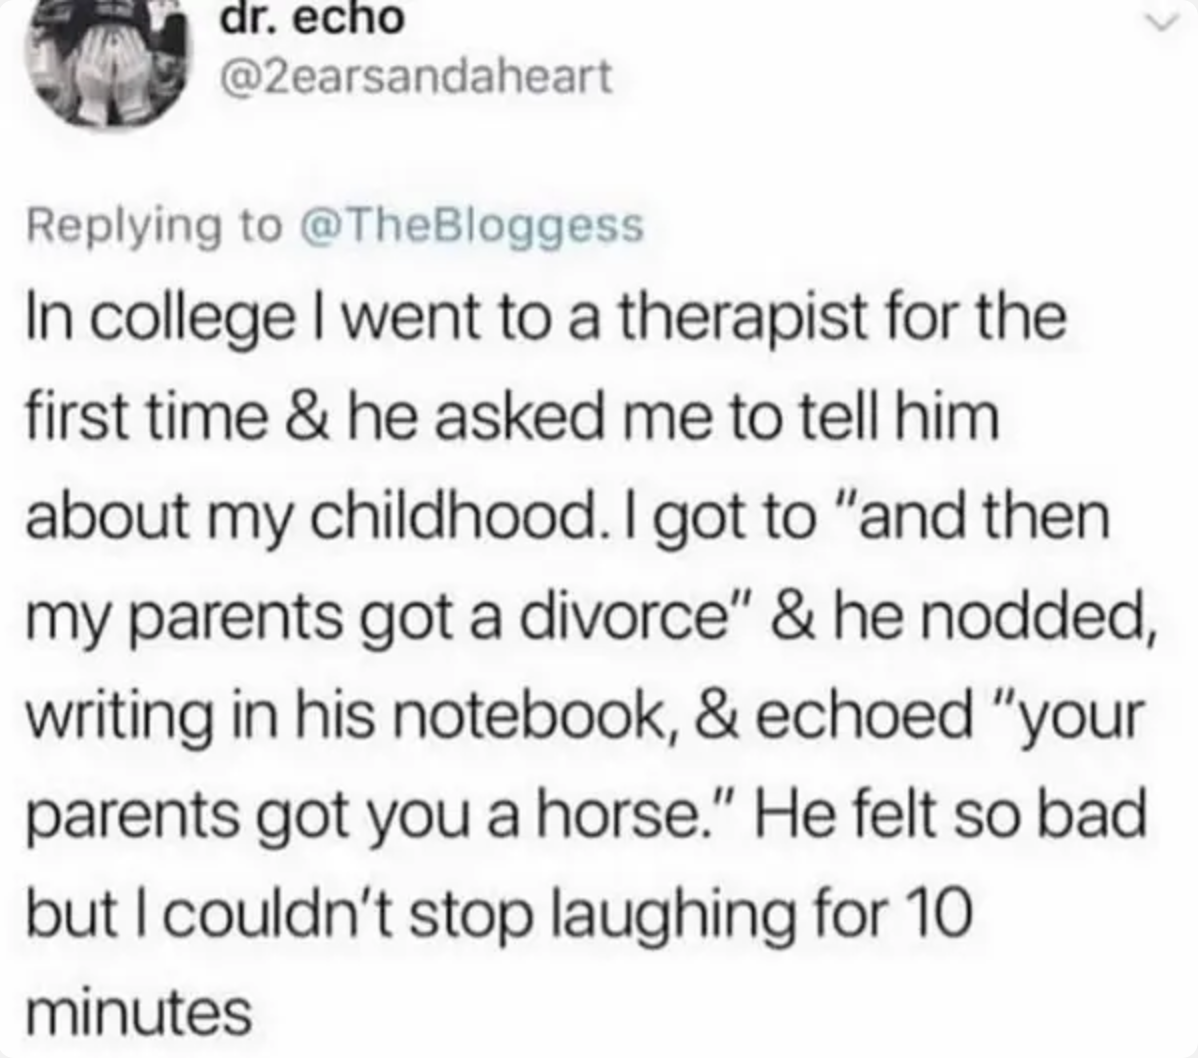 tweet reading in college i went to a therapist for the first time and he asked me to tell him about my childhood. i got to and then my parents got divorced and he said and then your parents got a horse